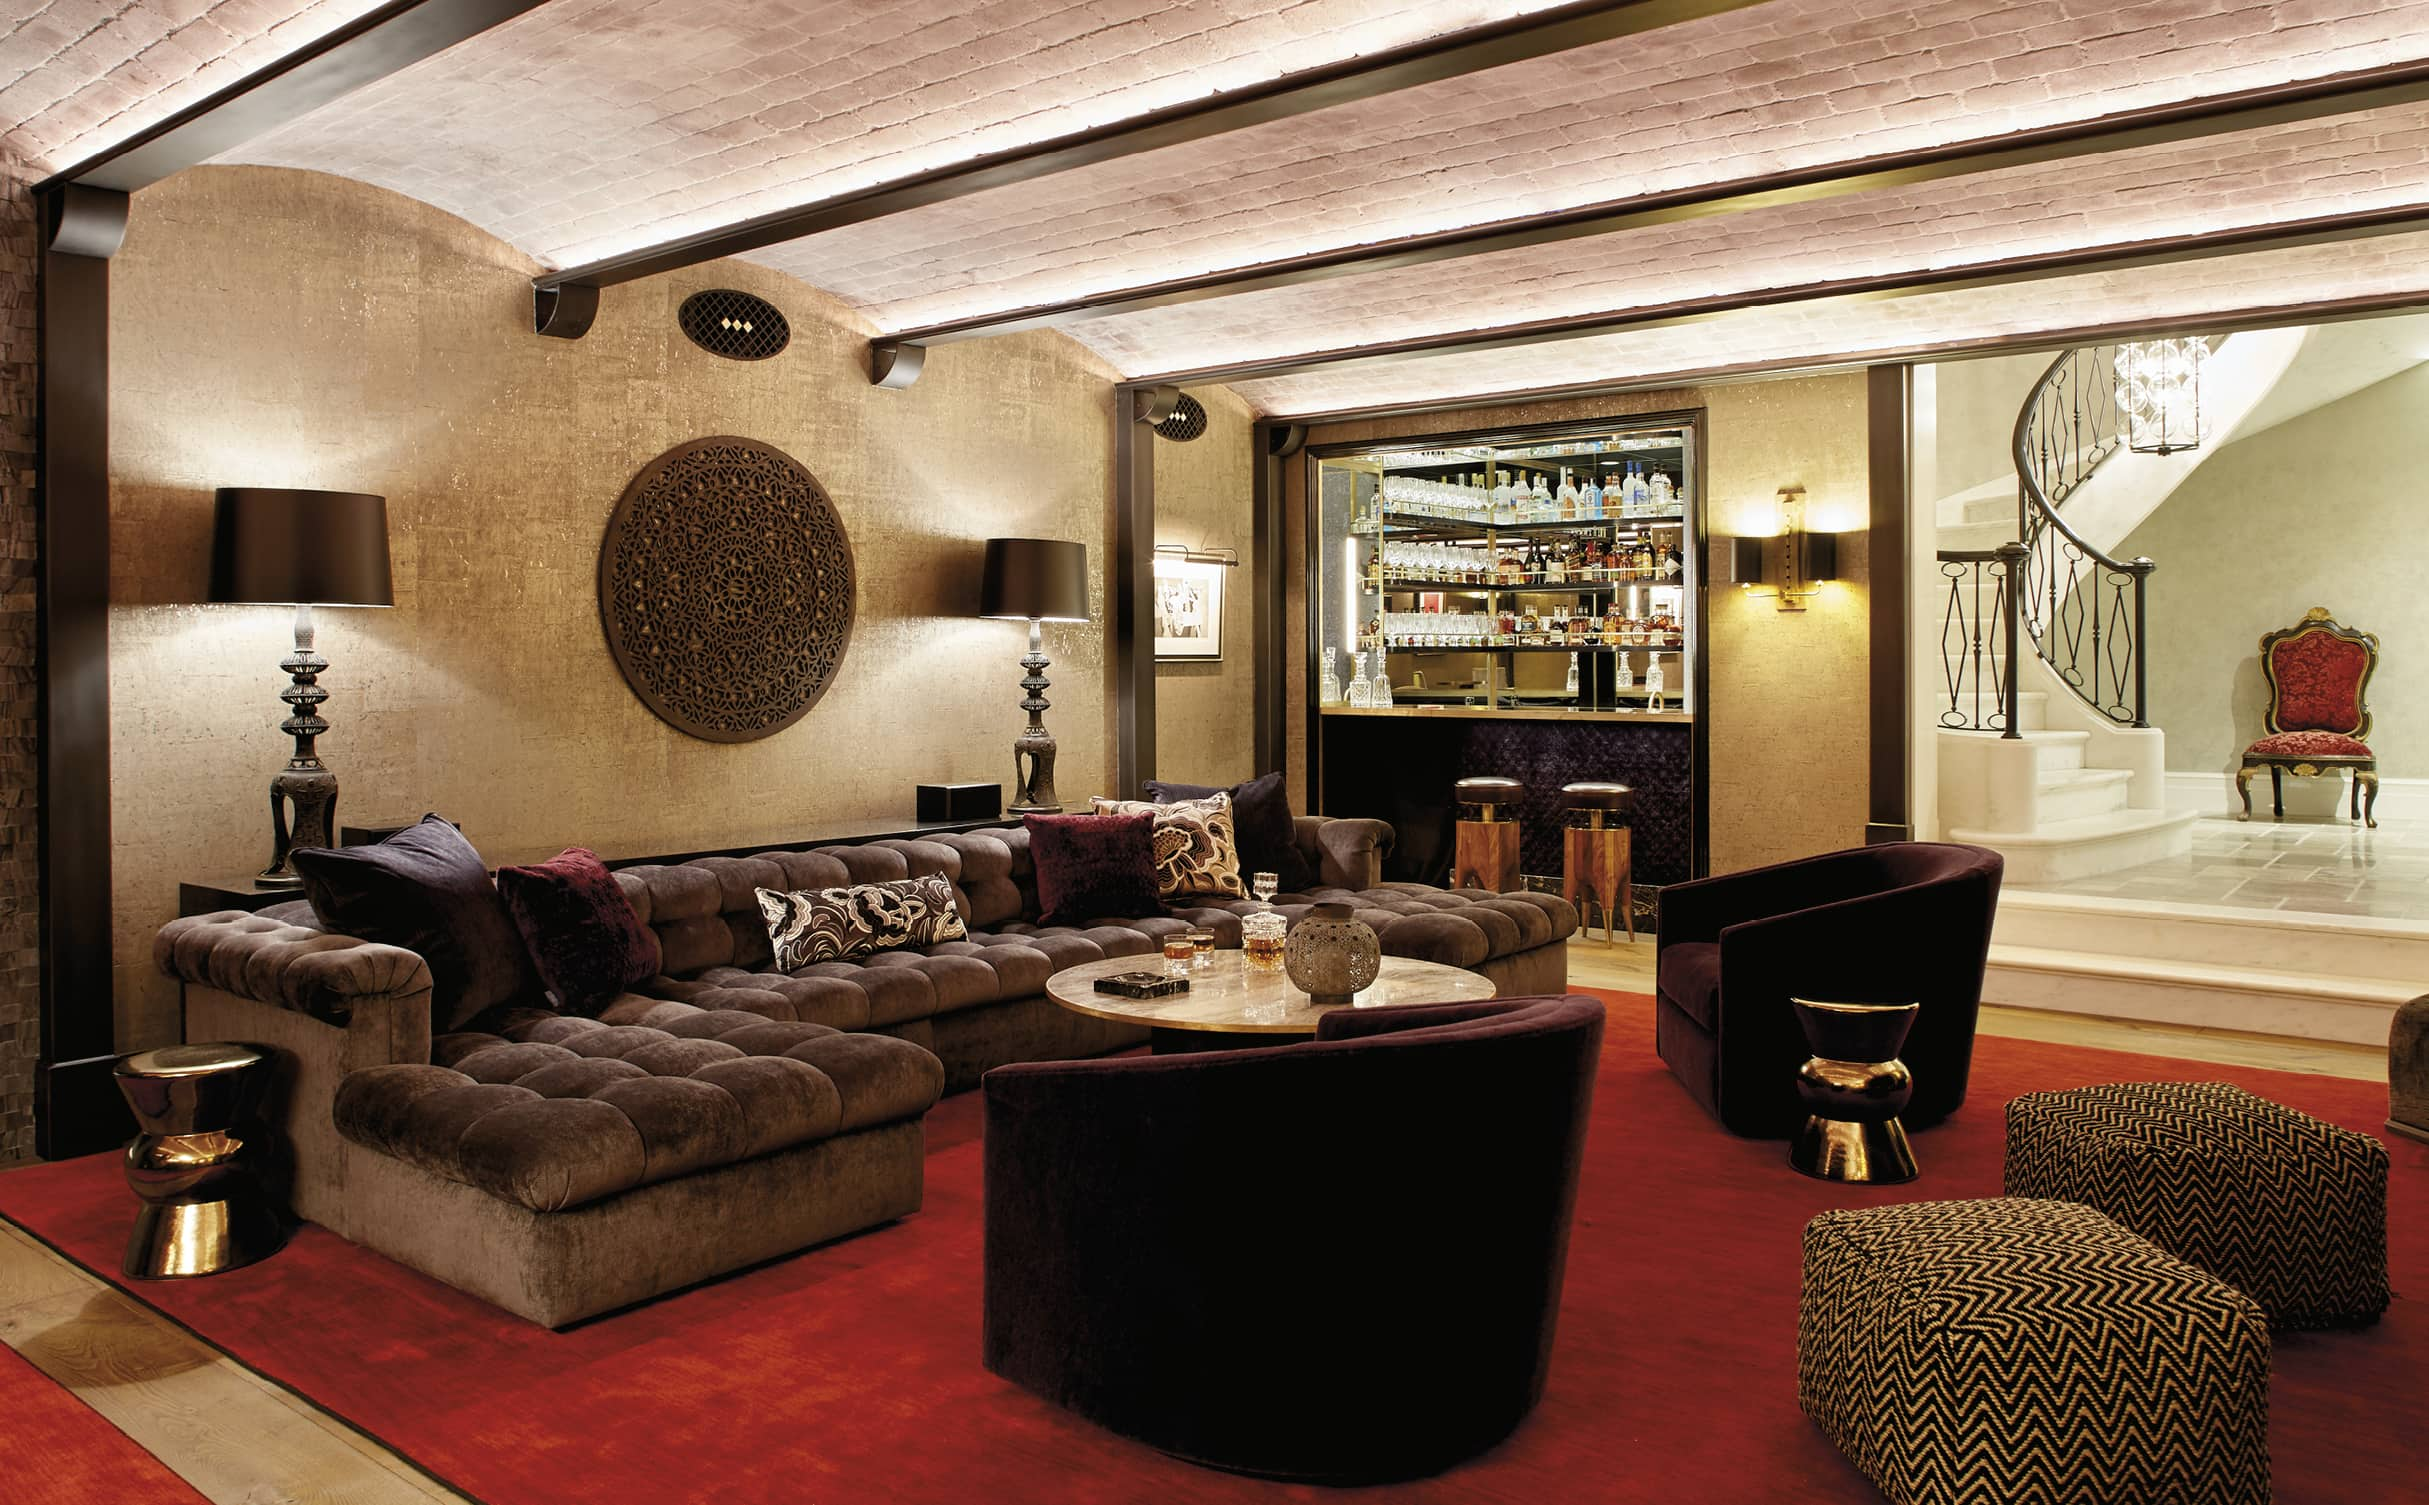 Bar area with a brick ceiling and mod furniture